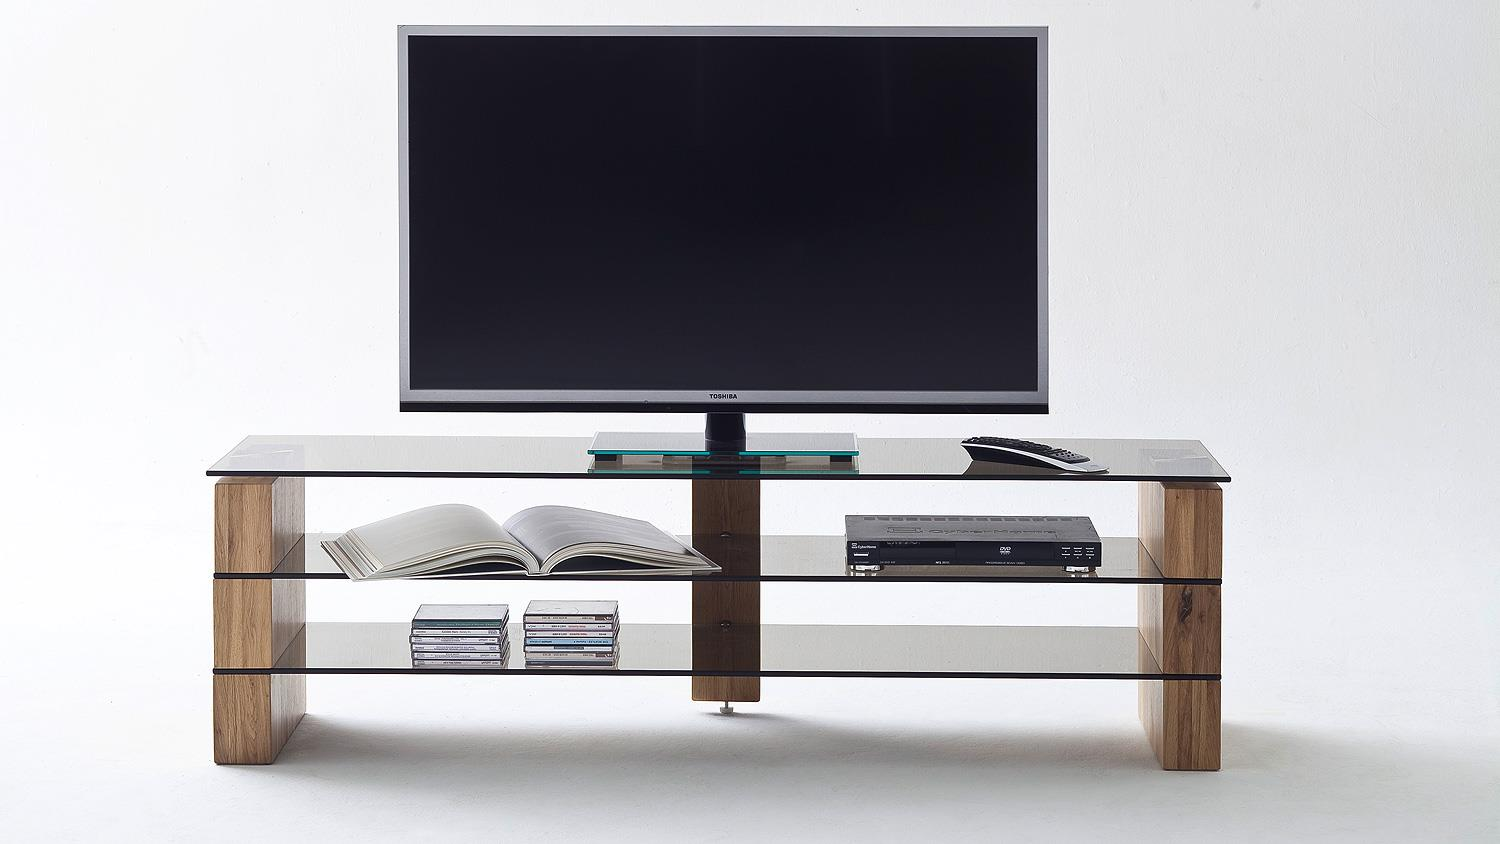 Tv Board Lowboard Tv Rack Kari Tv Board Lowboard In Eiche Massiv Glas Grau 140